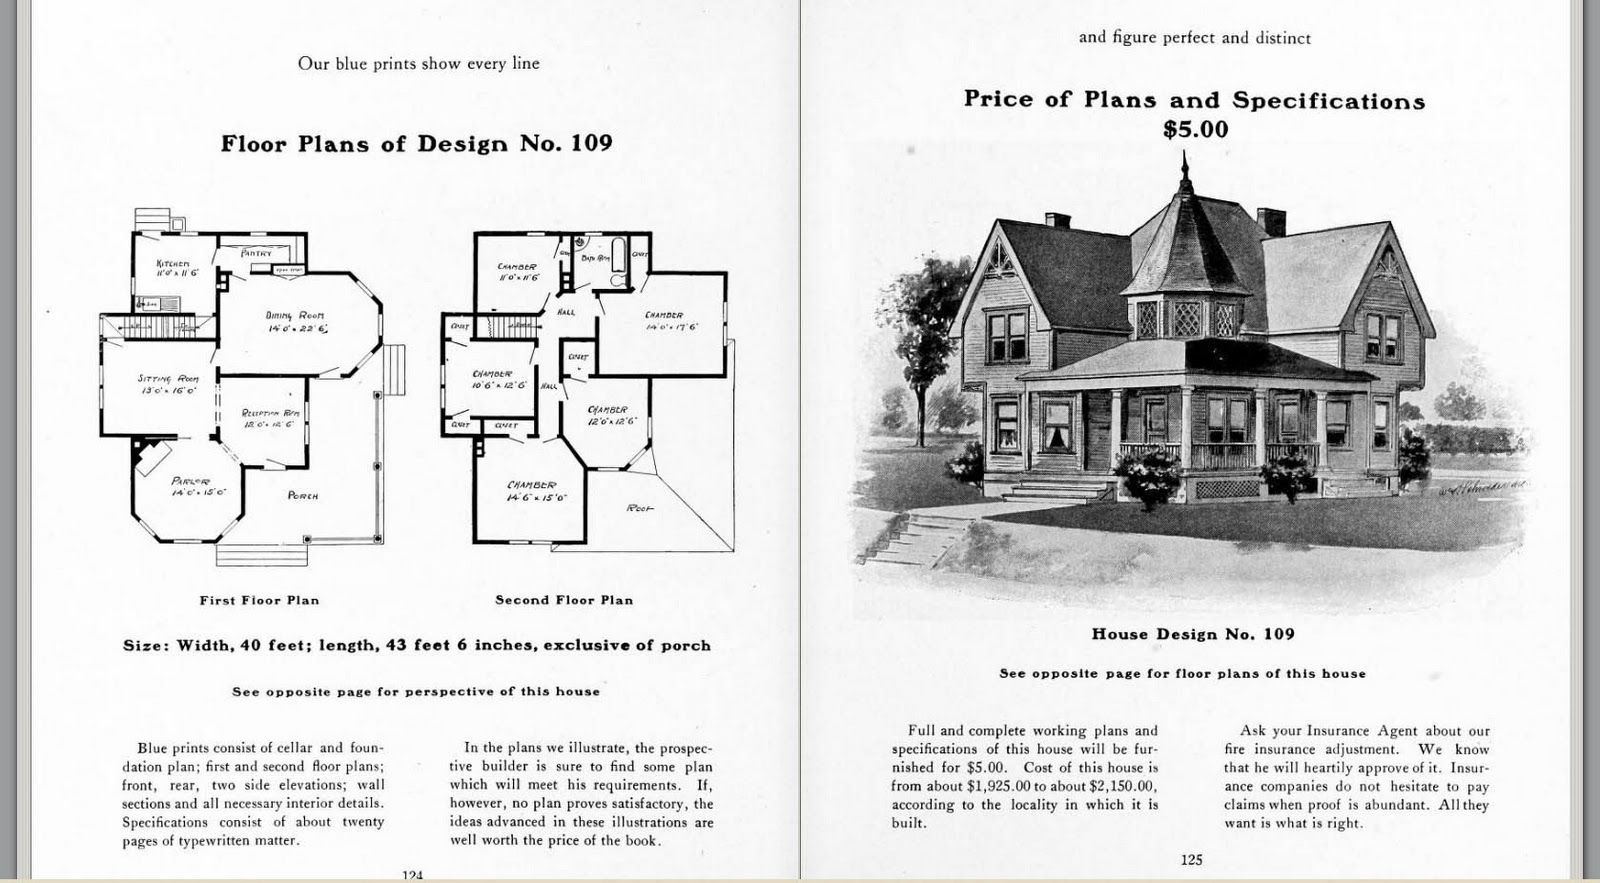 19th Century Victorian House Plan Historic Victorian House ... on european house plans, architecture house plans, modern house plans, 19th century mansion floor plans, new orleans shotgun house plans, 1930s bungalow house plans, 90's house plans, colonial house plans, post wwii house plans, small shotgun house plans, africa house plans, victorian house plans, united states house plans, charleston row house plans, 19th century farmhouse plans, house construction plans, canada house plans, two-story bungalow house plans, homemade treadmill plans, 30x40 metal building plans,